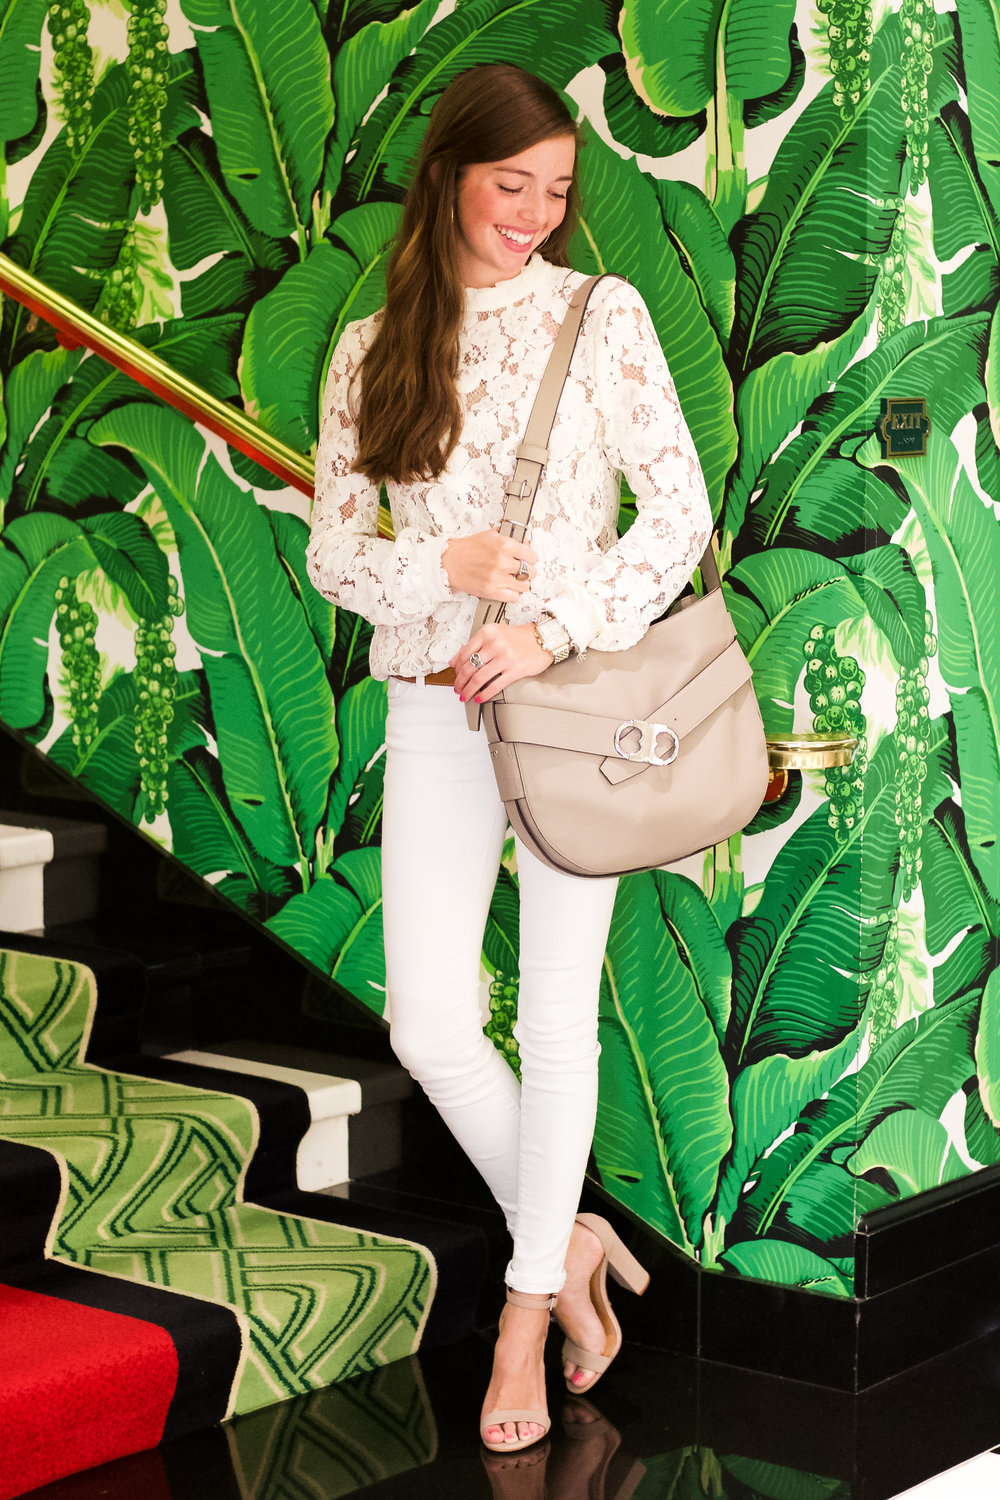 fashion blogger lcb style greenbrier tory burch j. crew (6 of 14).jpg